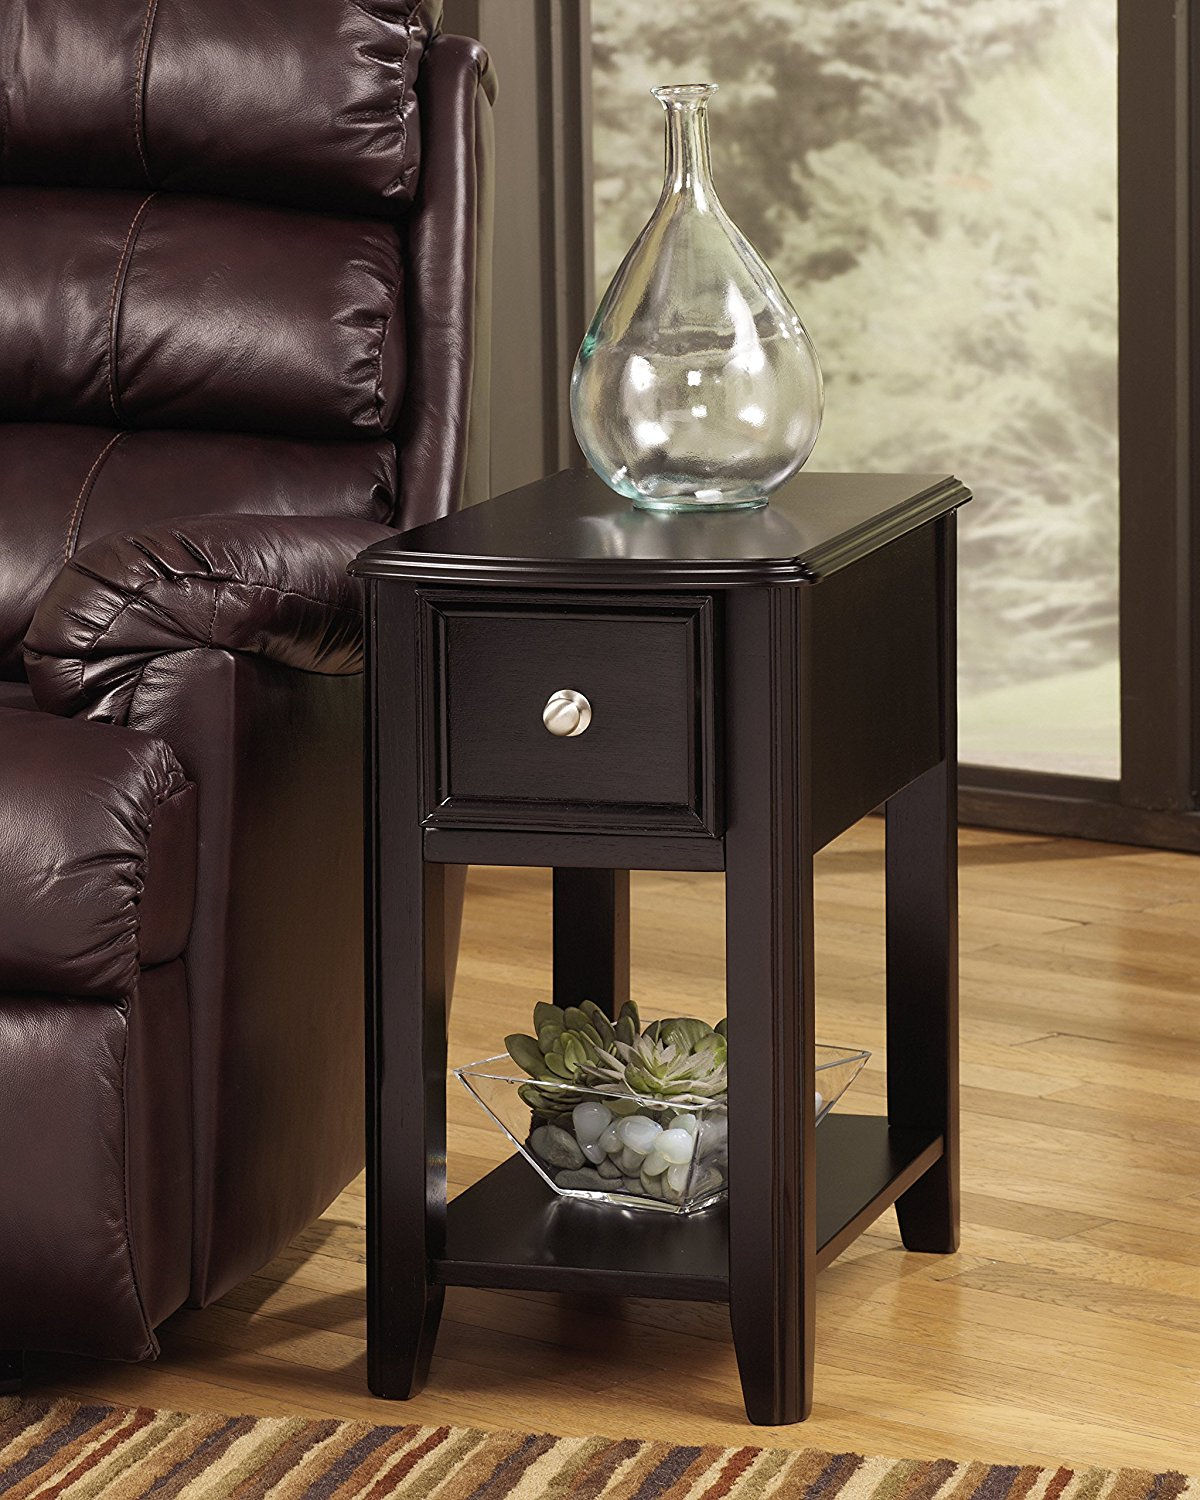 terrific small side table options for your living room ashley signature design breegin chair end accent tables furniture rectangular with nickel tone hardware and vita lampen